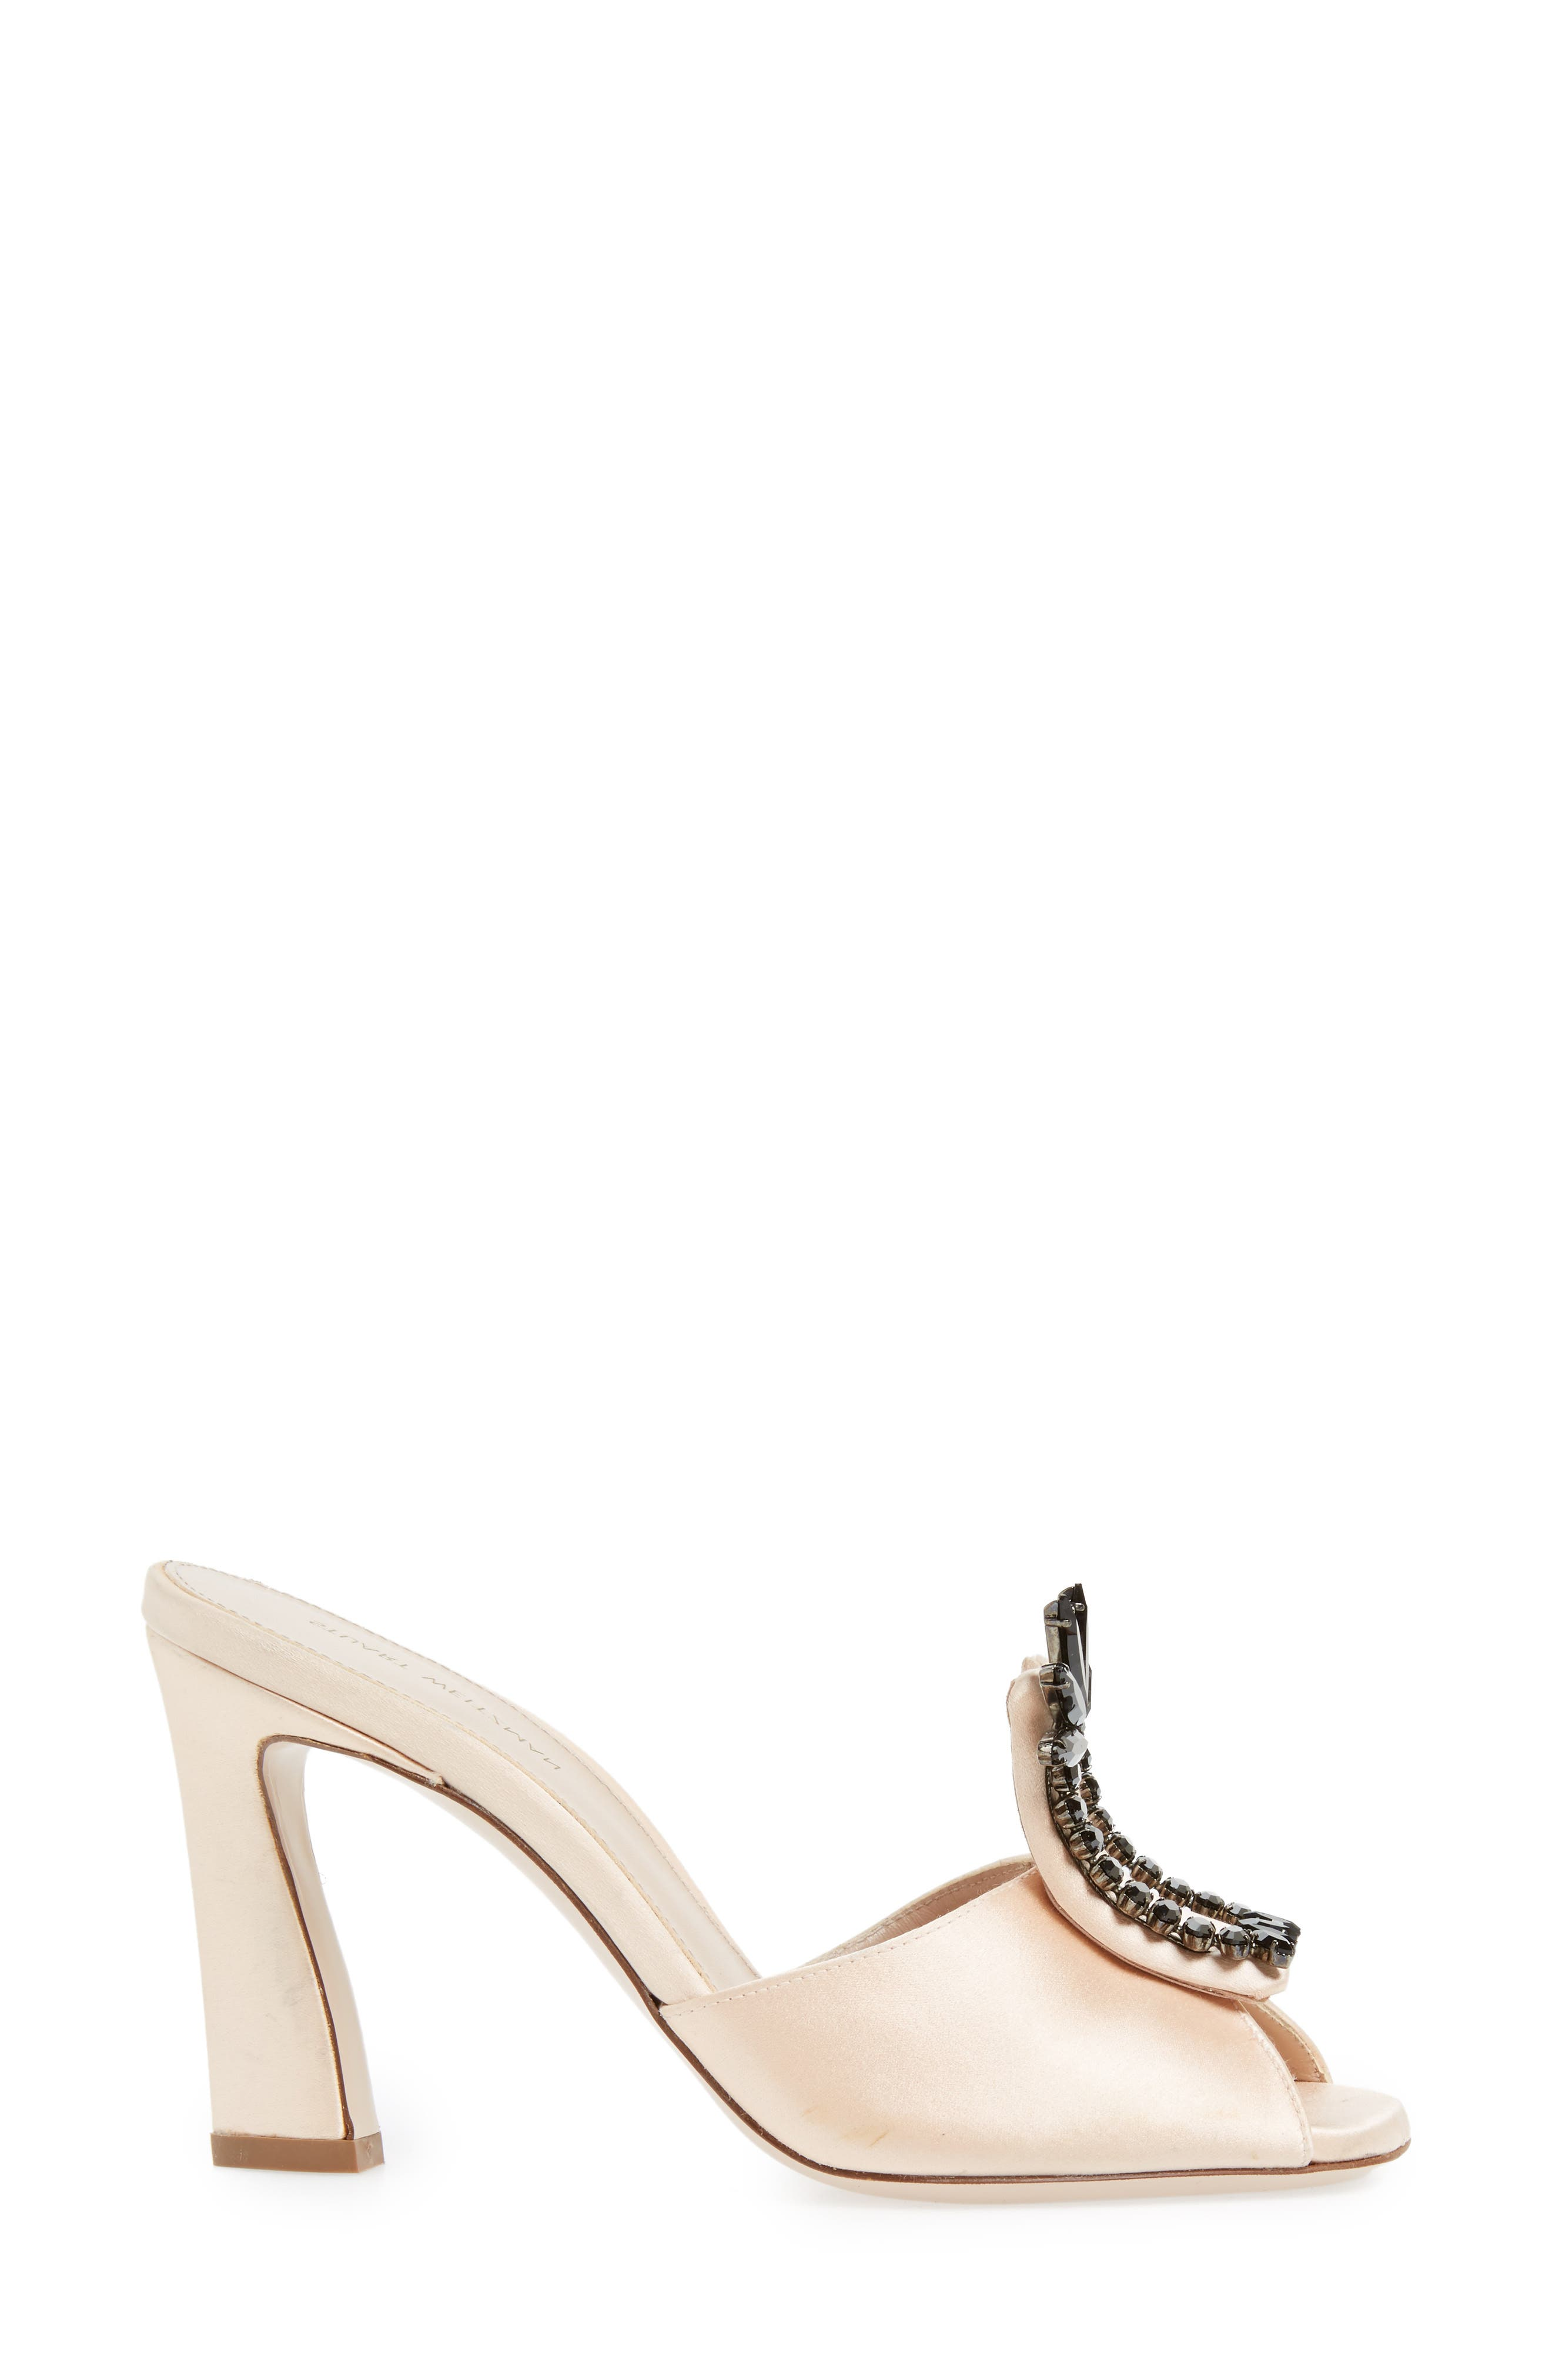 Radiance Embellished d'Orsay Sandal,                             Alternate thumbnail 3, color,                             270